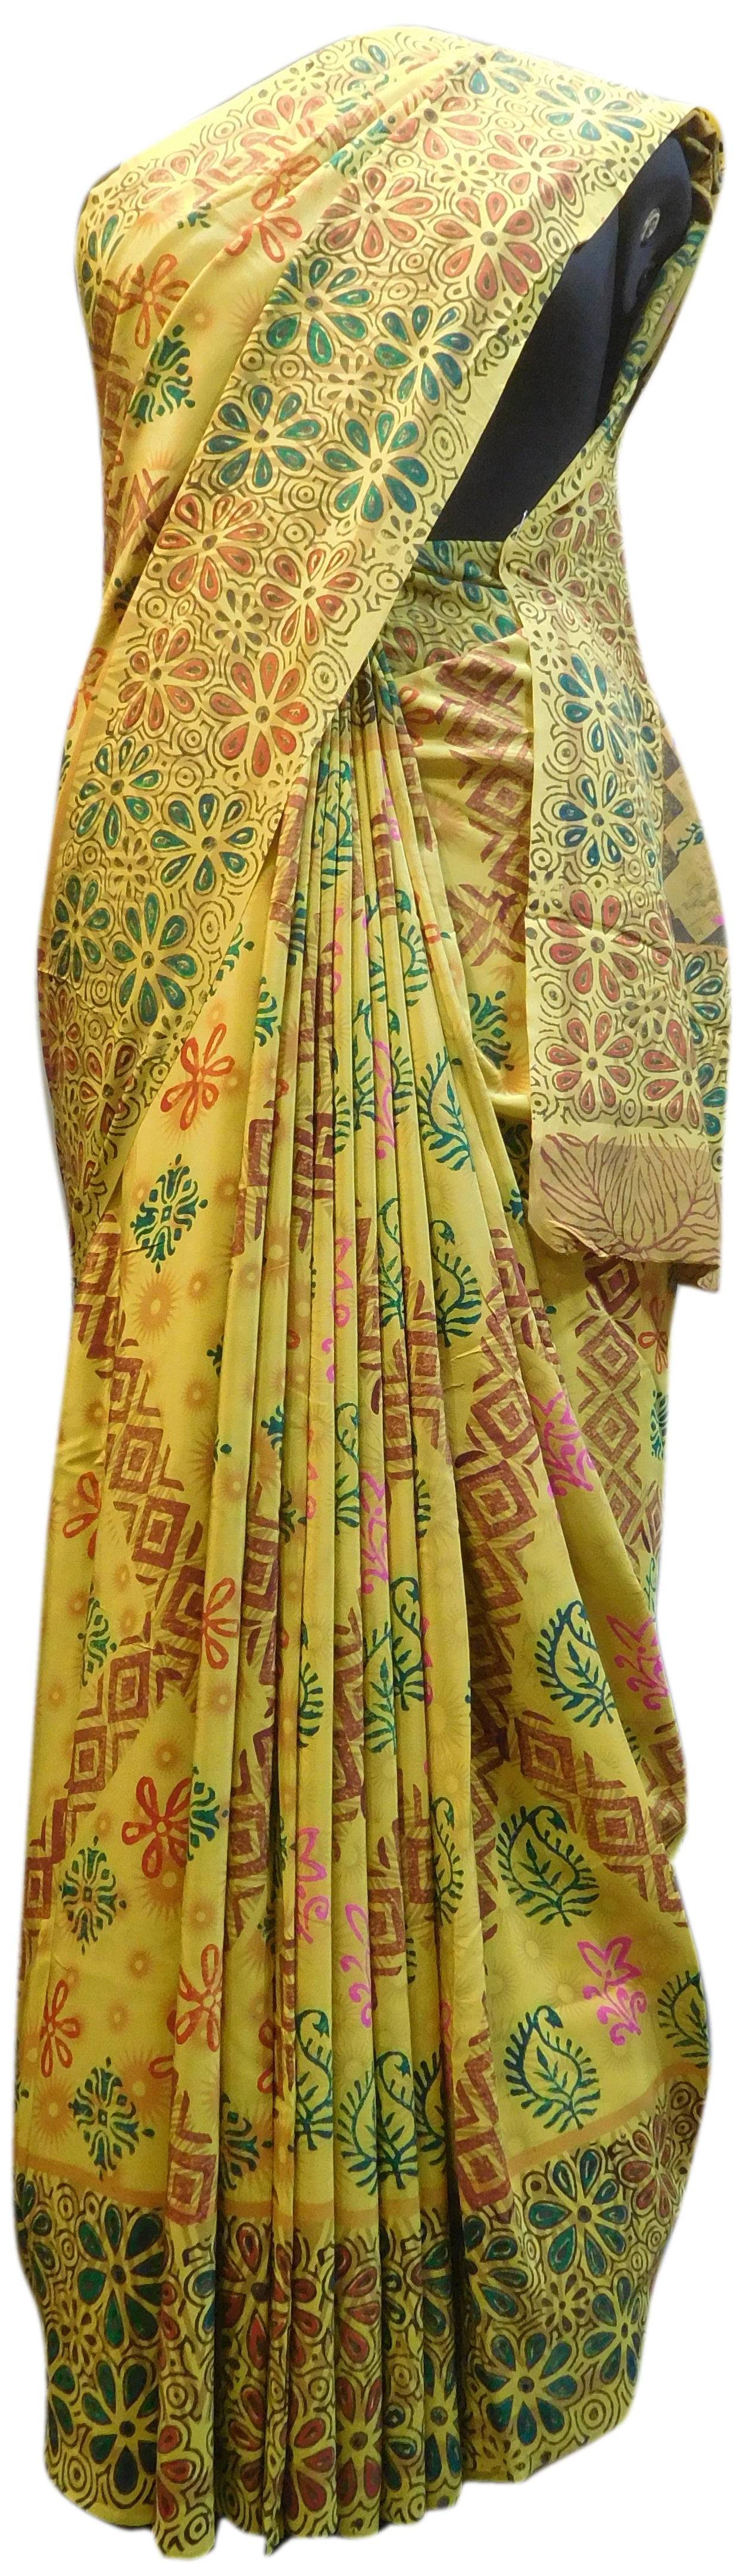 Multicolor Designer Wedding Partywear Pure Crepe Hand Brush Reprinted Kolkata Saree Sari RP151